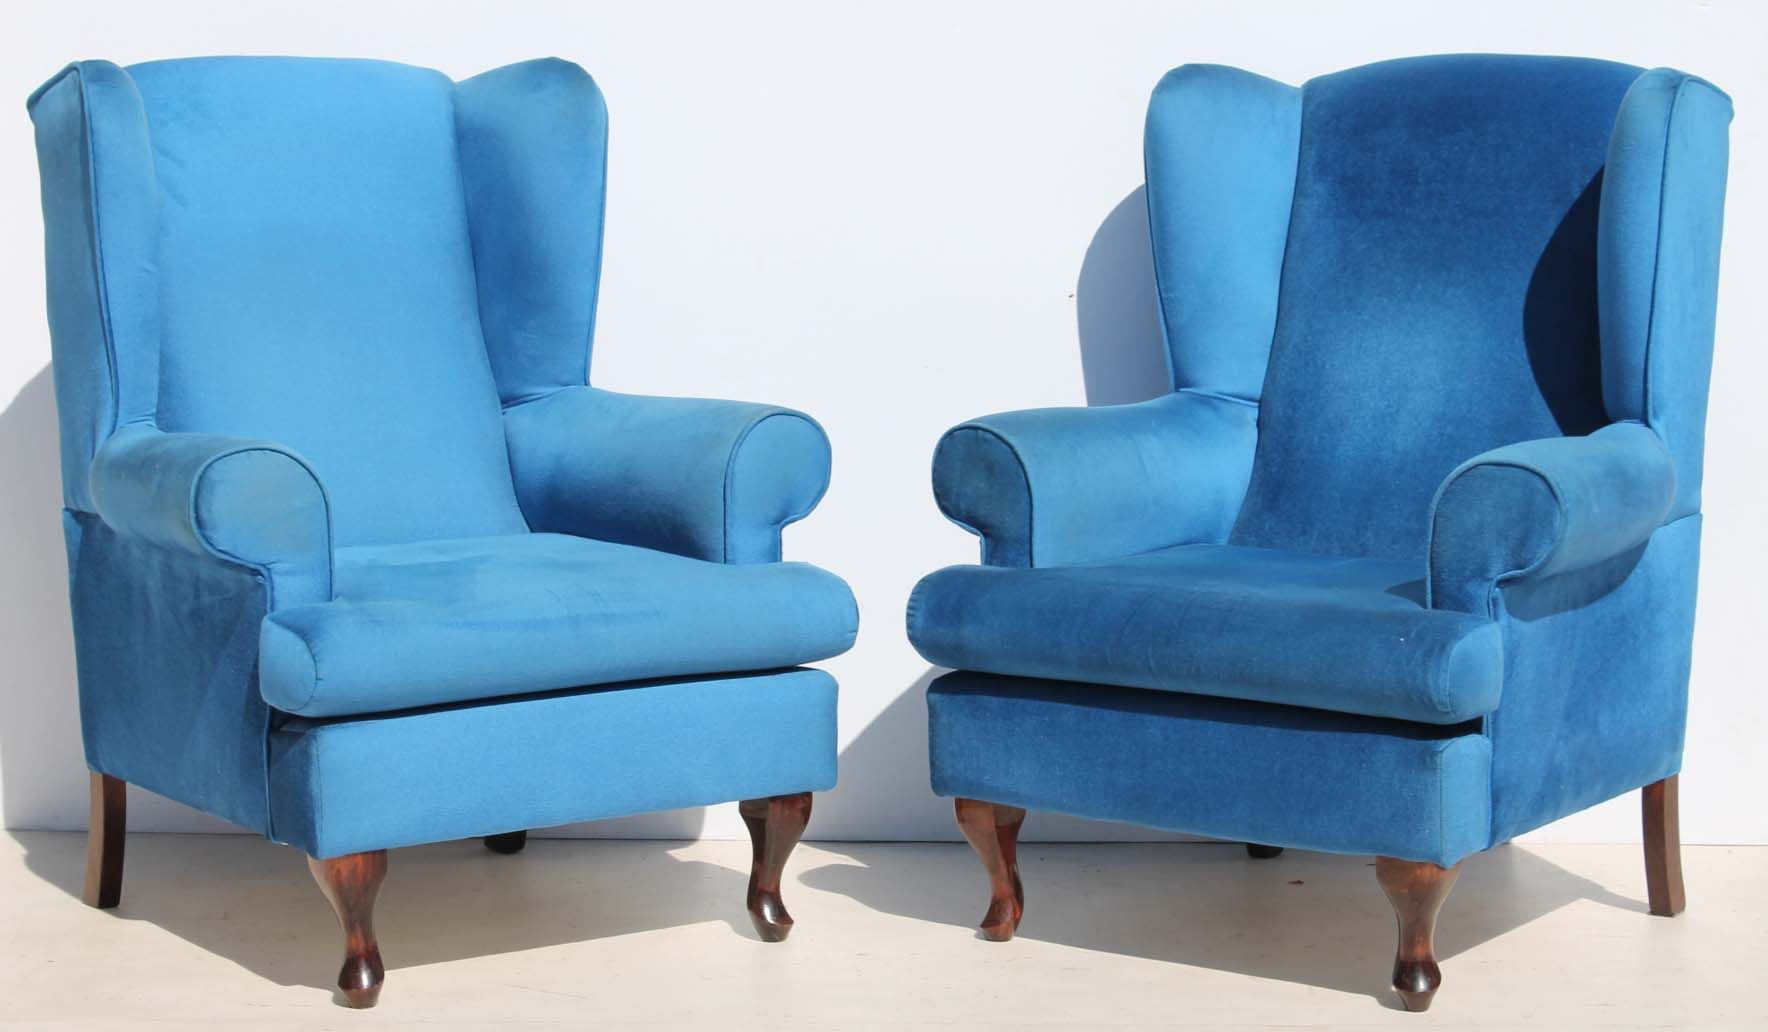 Used Wingback Chairs 2 Blue Queen Anne Wingback Chairs Condition Used 2 Blue Queen